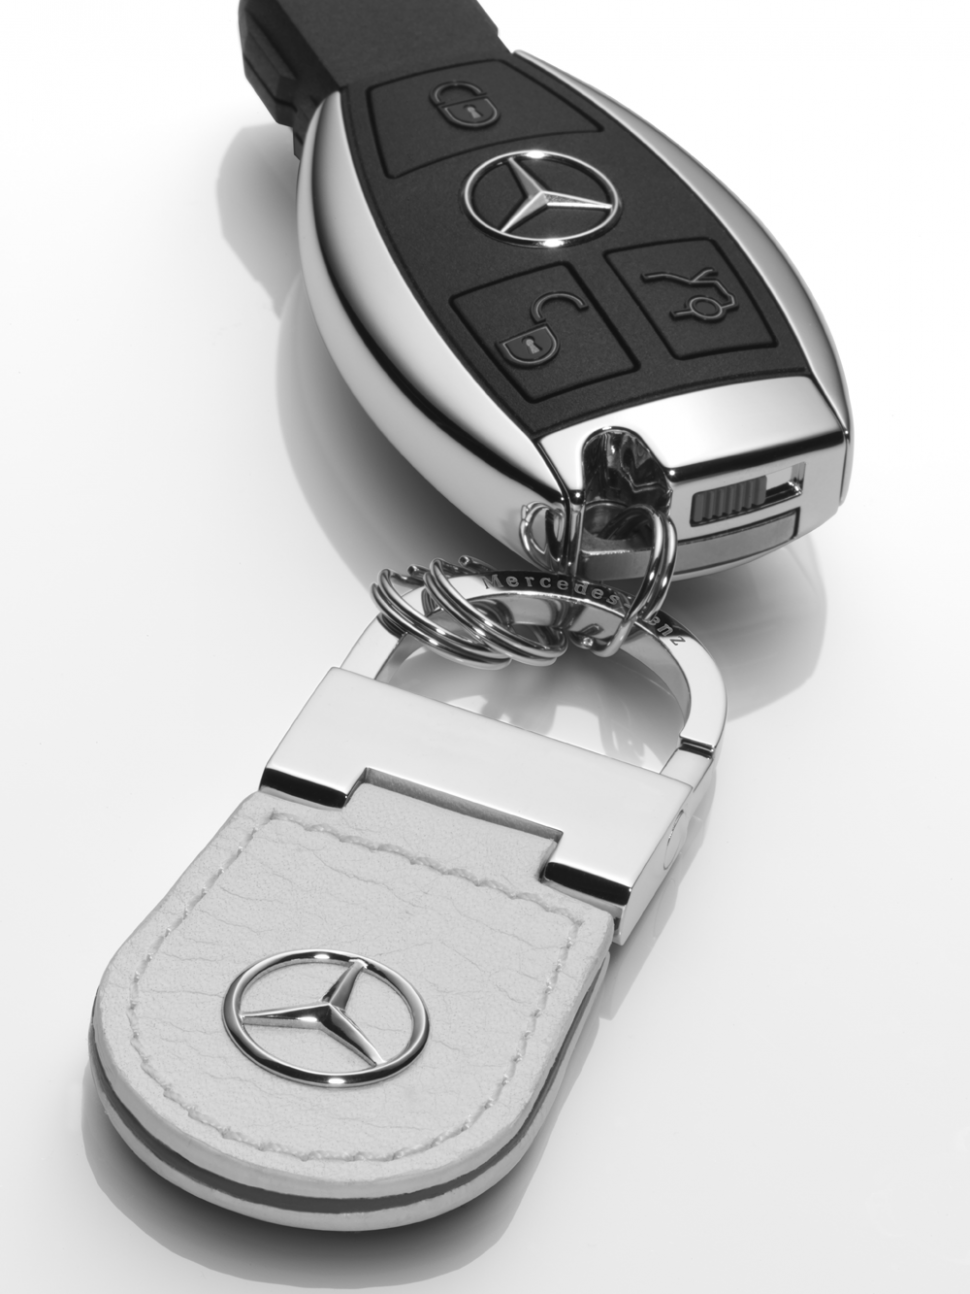 mercedes benz key ring keyrings beijing white leather. Black Bedroom Furniture Sets. Home Design Ideas